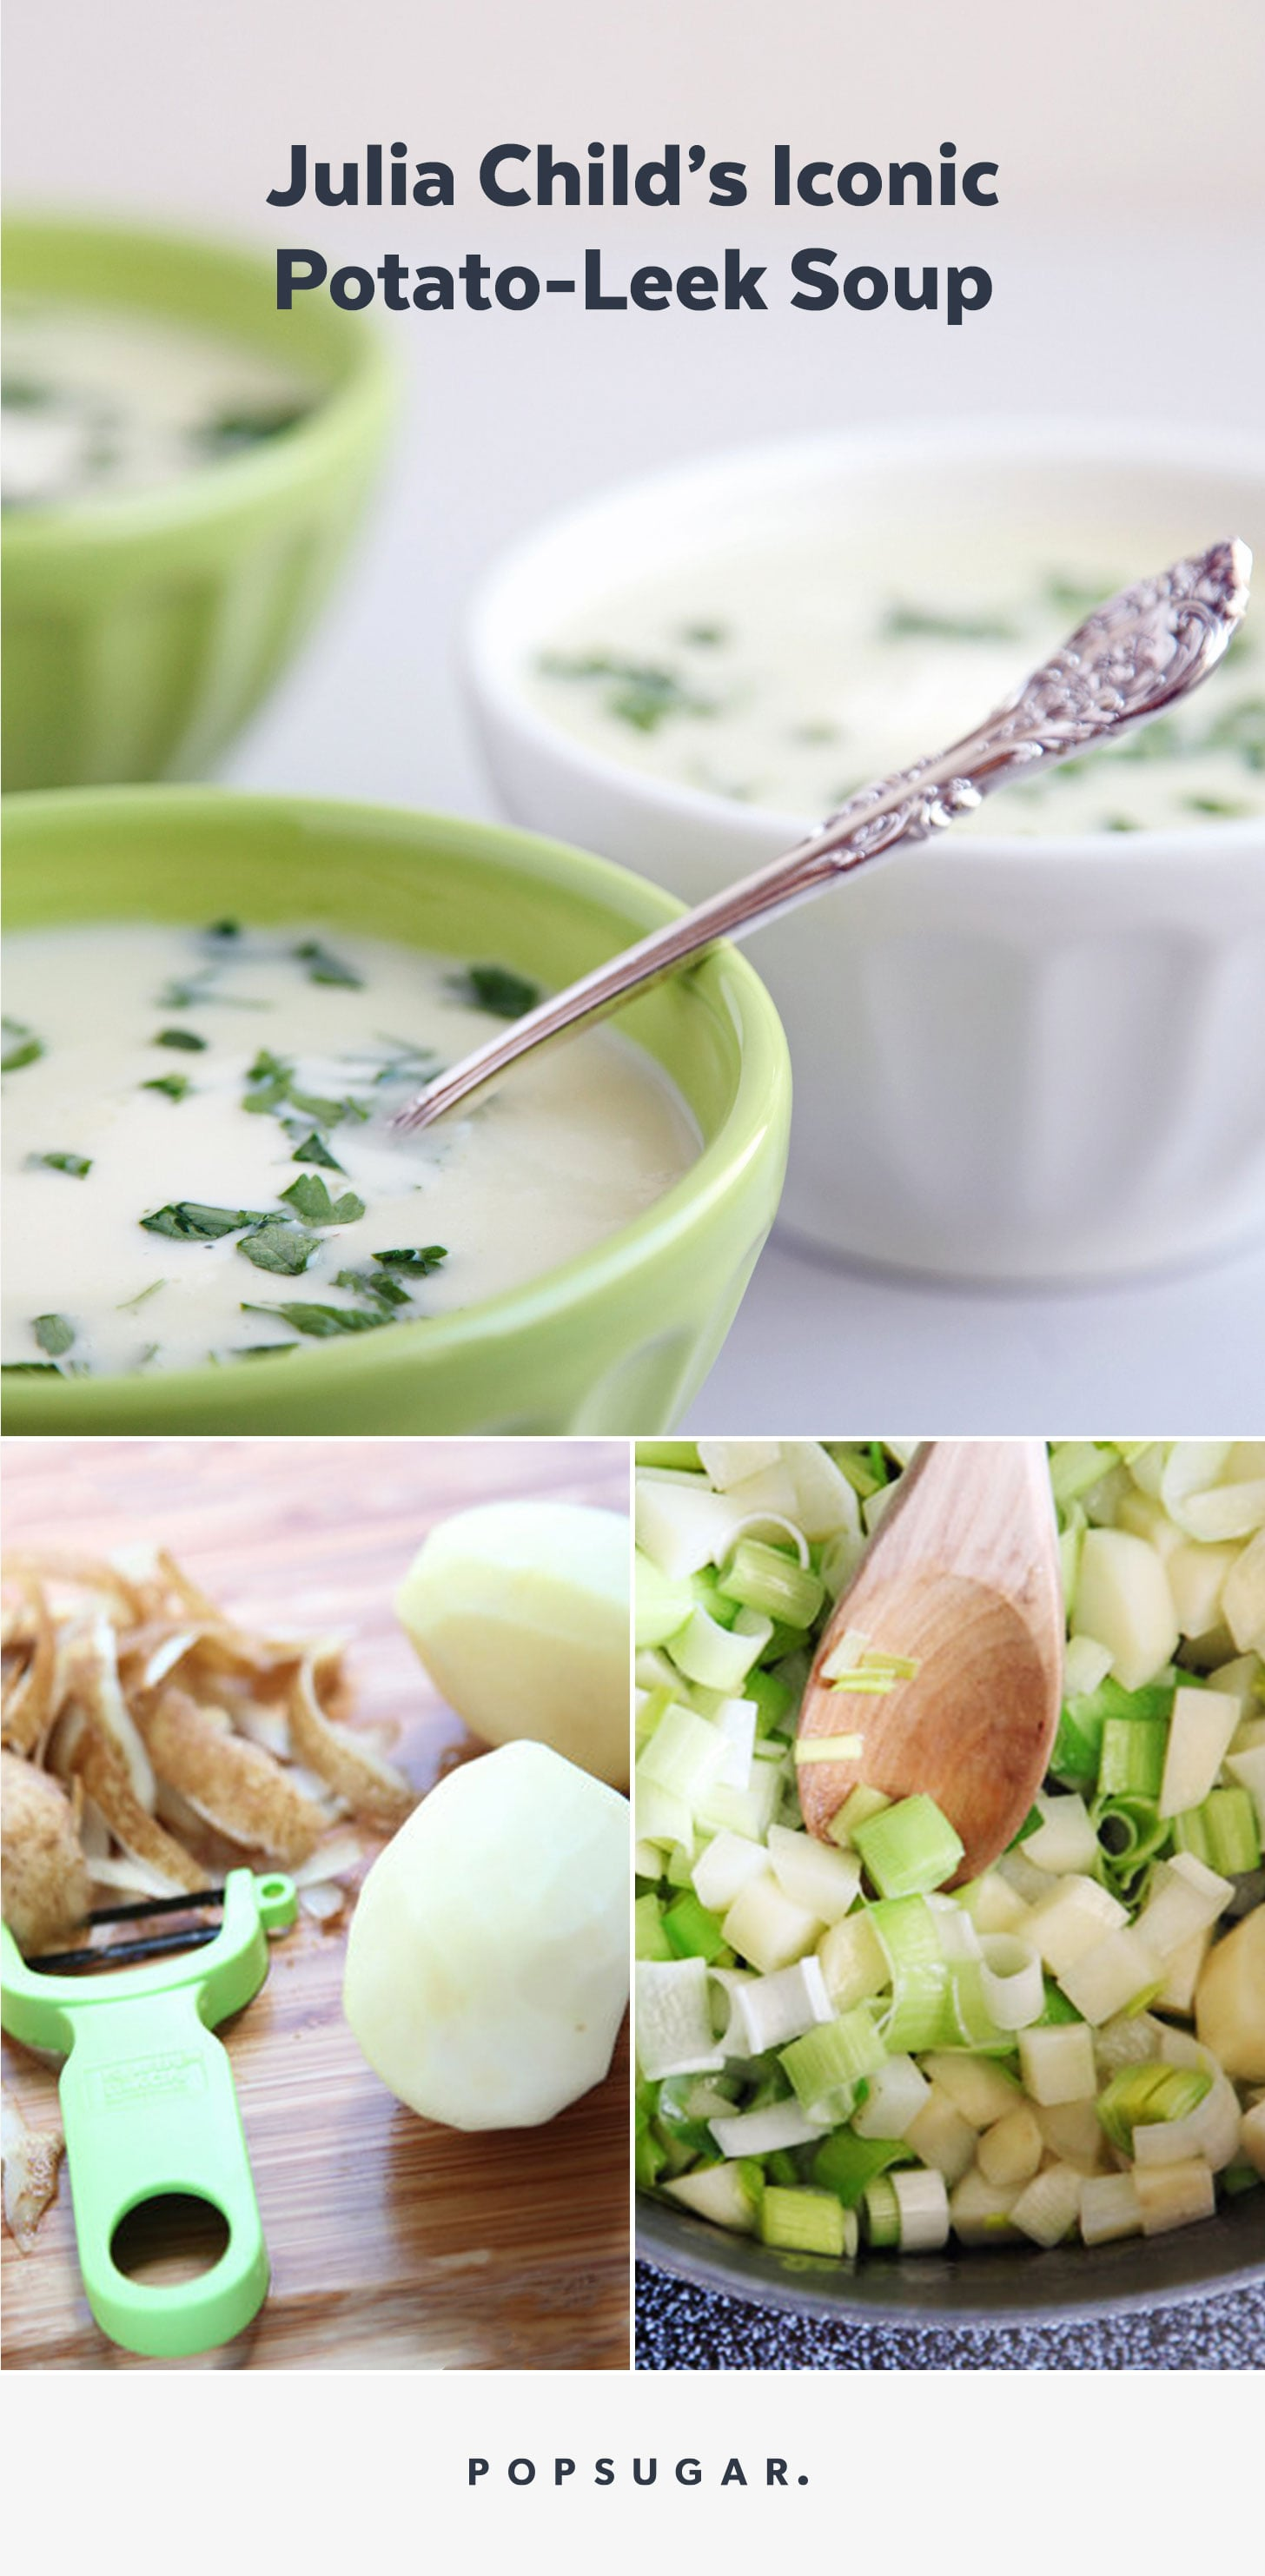 Make Julia Child's Iconic Potato-Leek Soup Tonight!